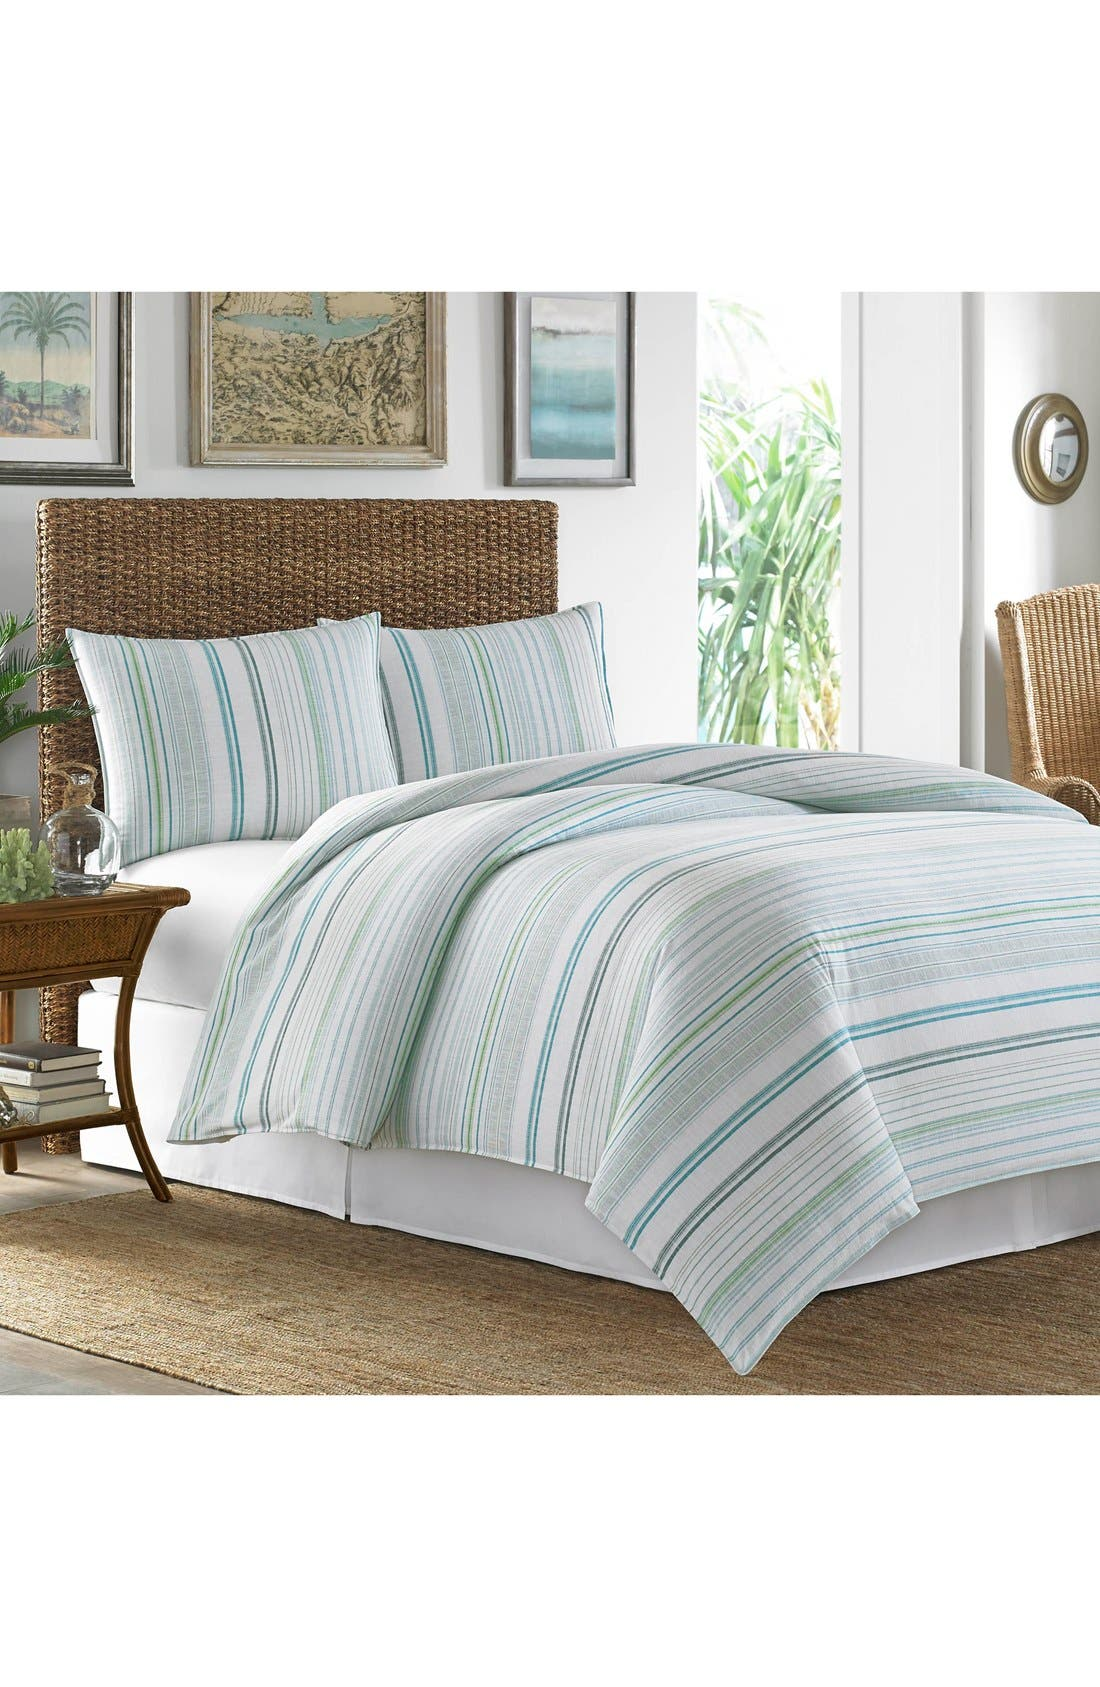 Alternate Image 1 Selected - Tommy Bahama La Scala Breezer Comforter, Sham & Bed Skirt Set